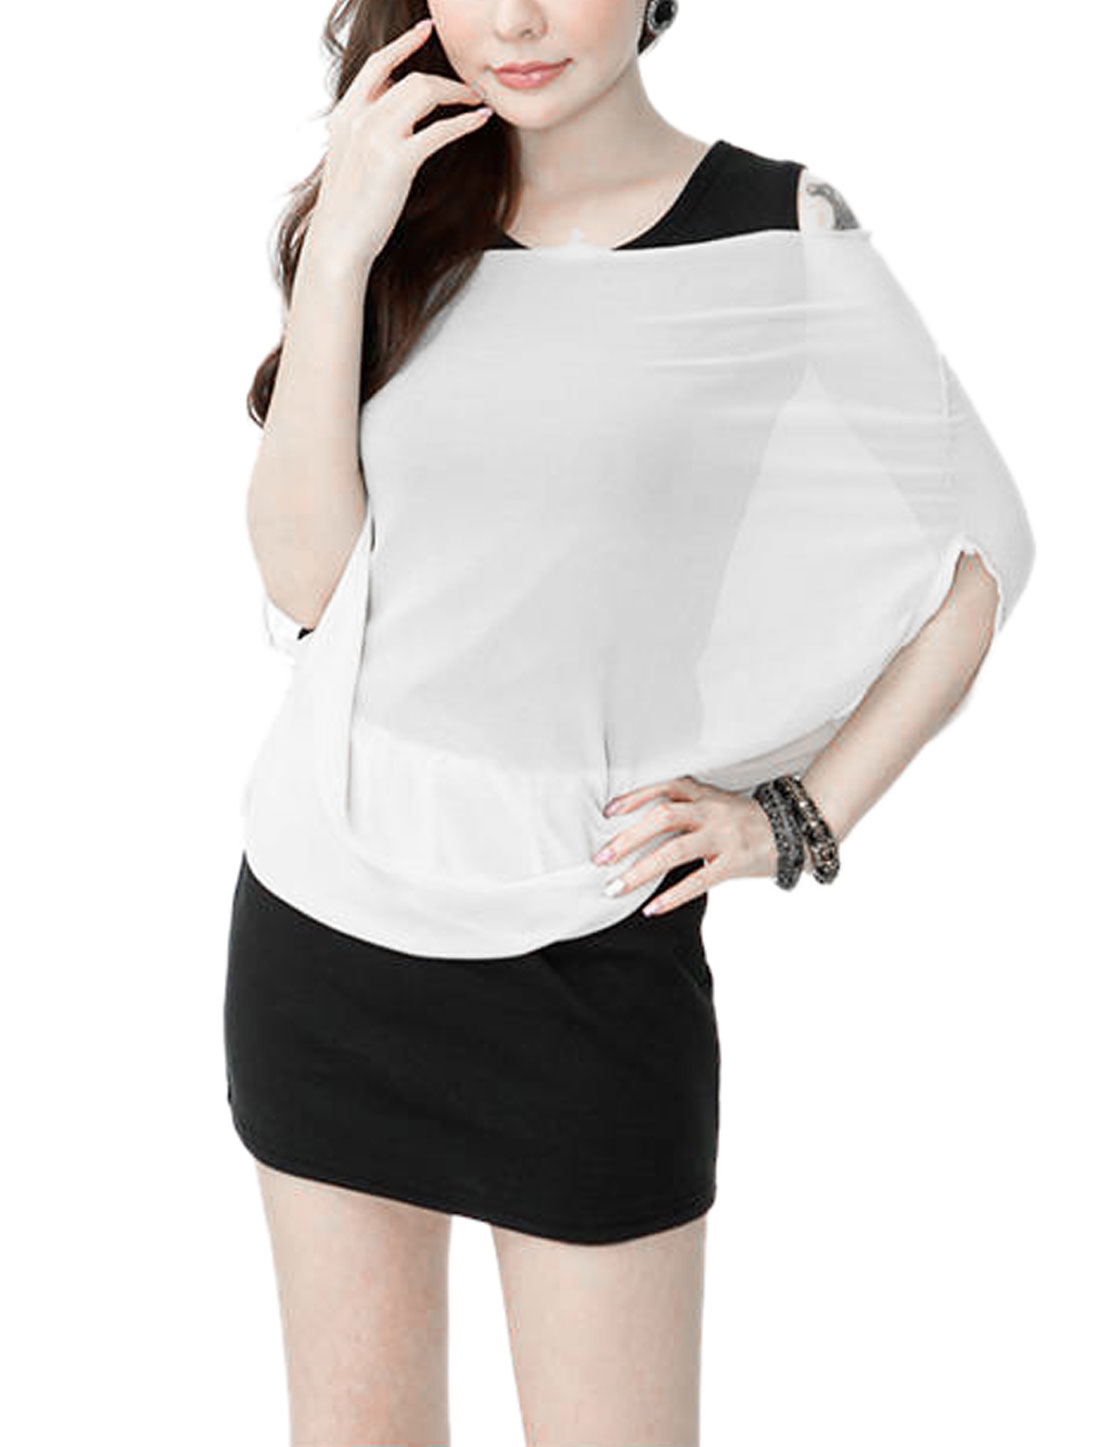 Lady Scoop Neck Straight Layered Dress White Black XS